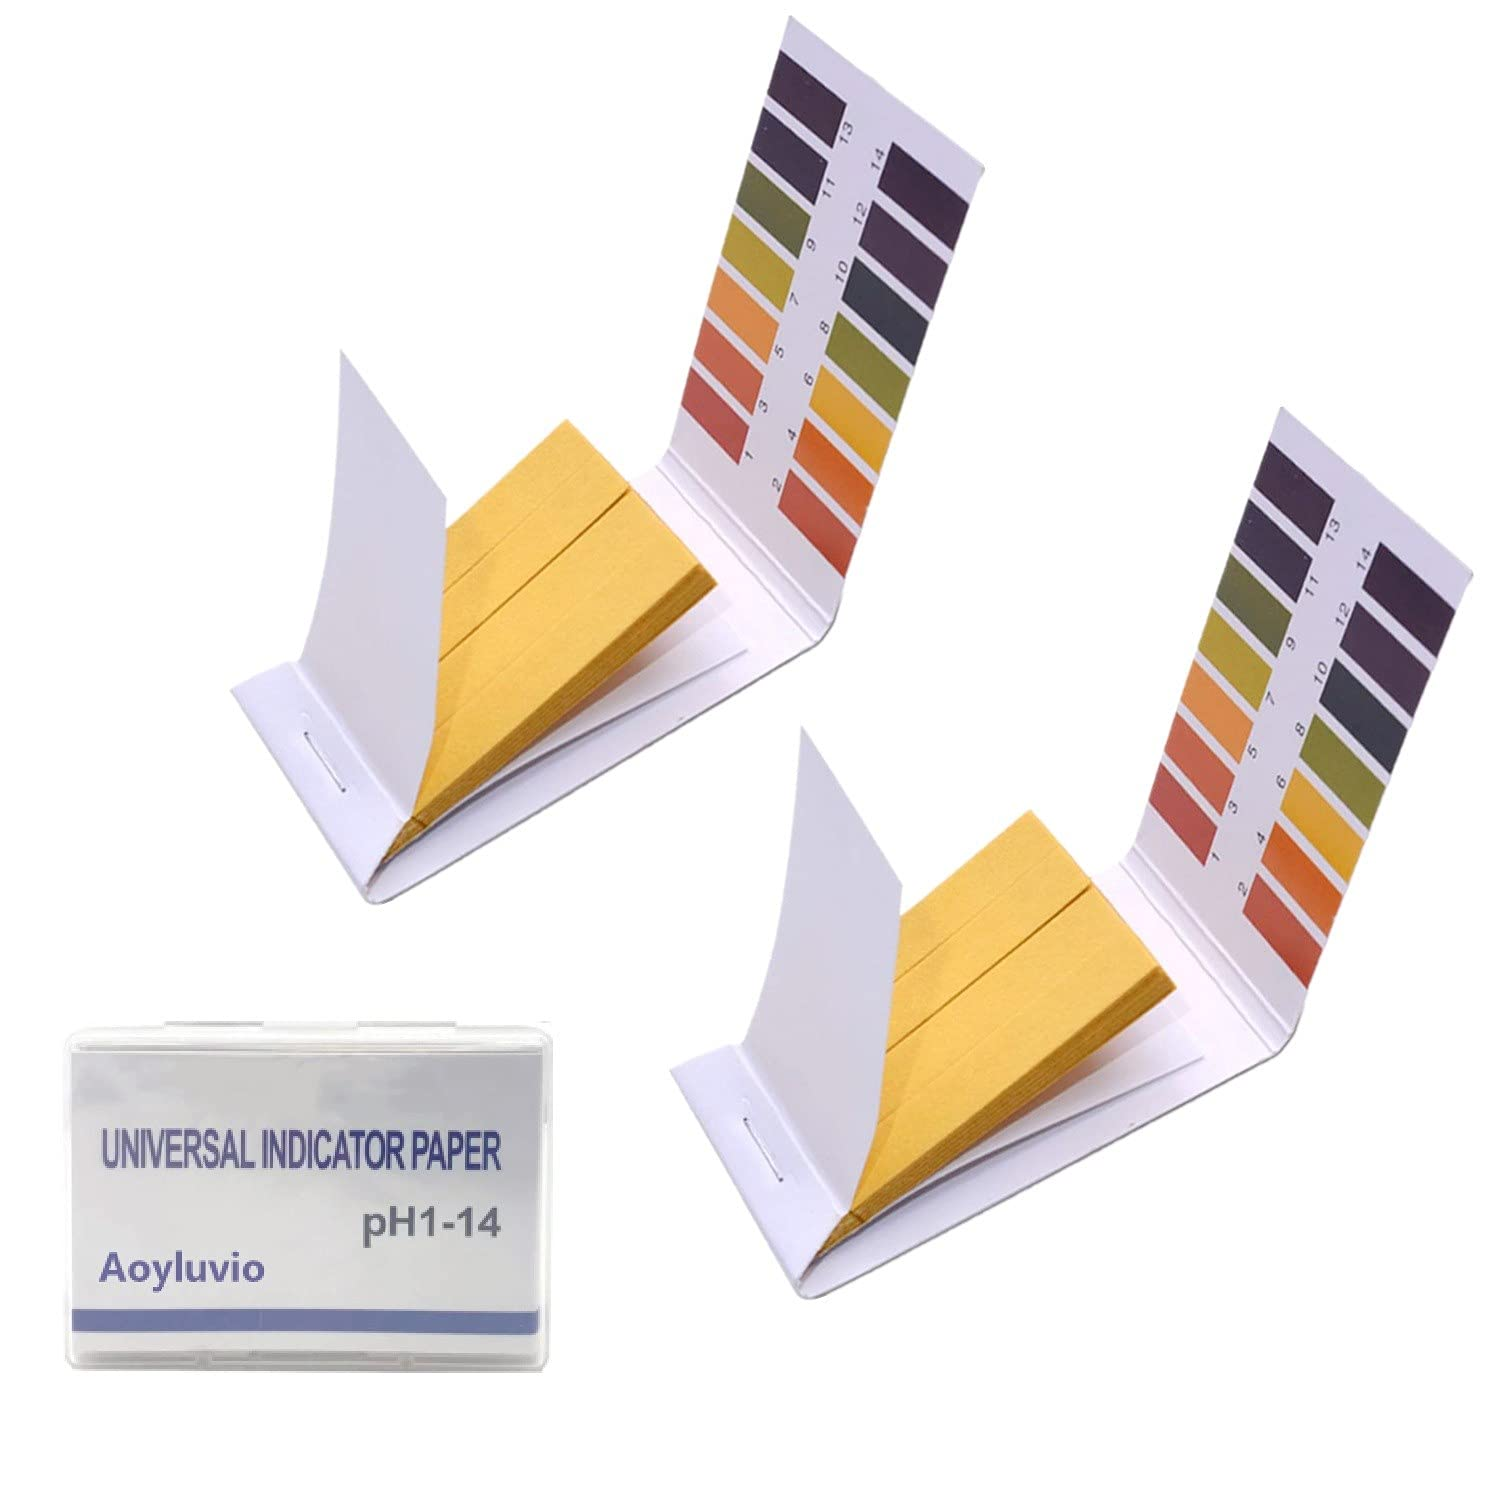 pH.1-14 Test Paper Litmus Test Paper 180 Strips pH Test with Storage Case for Urine, Saliva, Drinking Water, Pool, Spa,Soap, & Liquids and Food pH Monitoring (2 Pack with Storage Case)